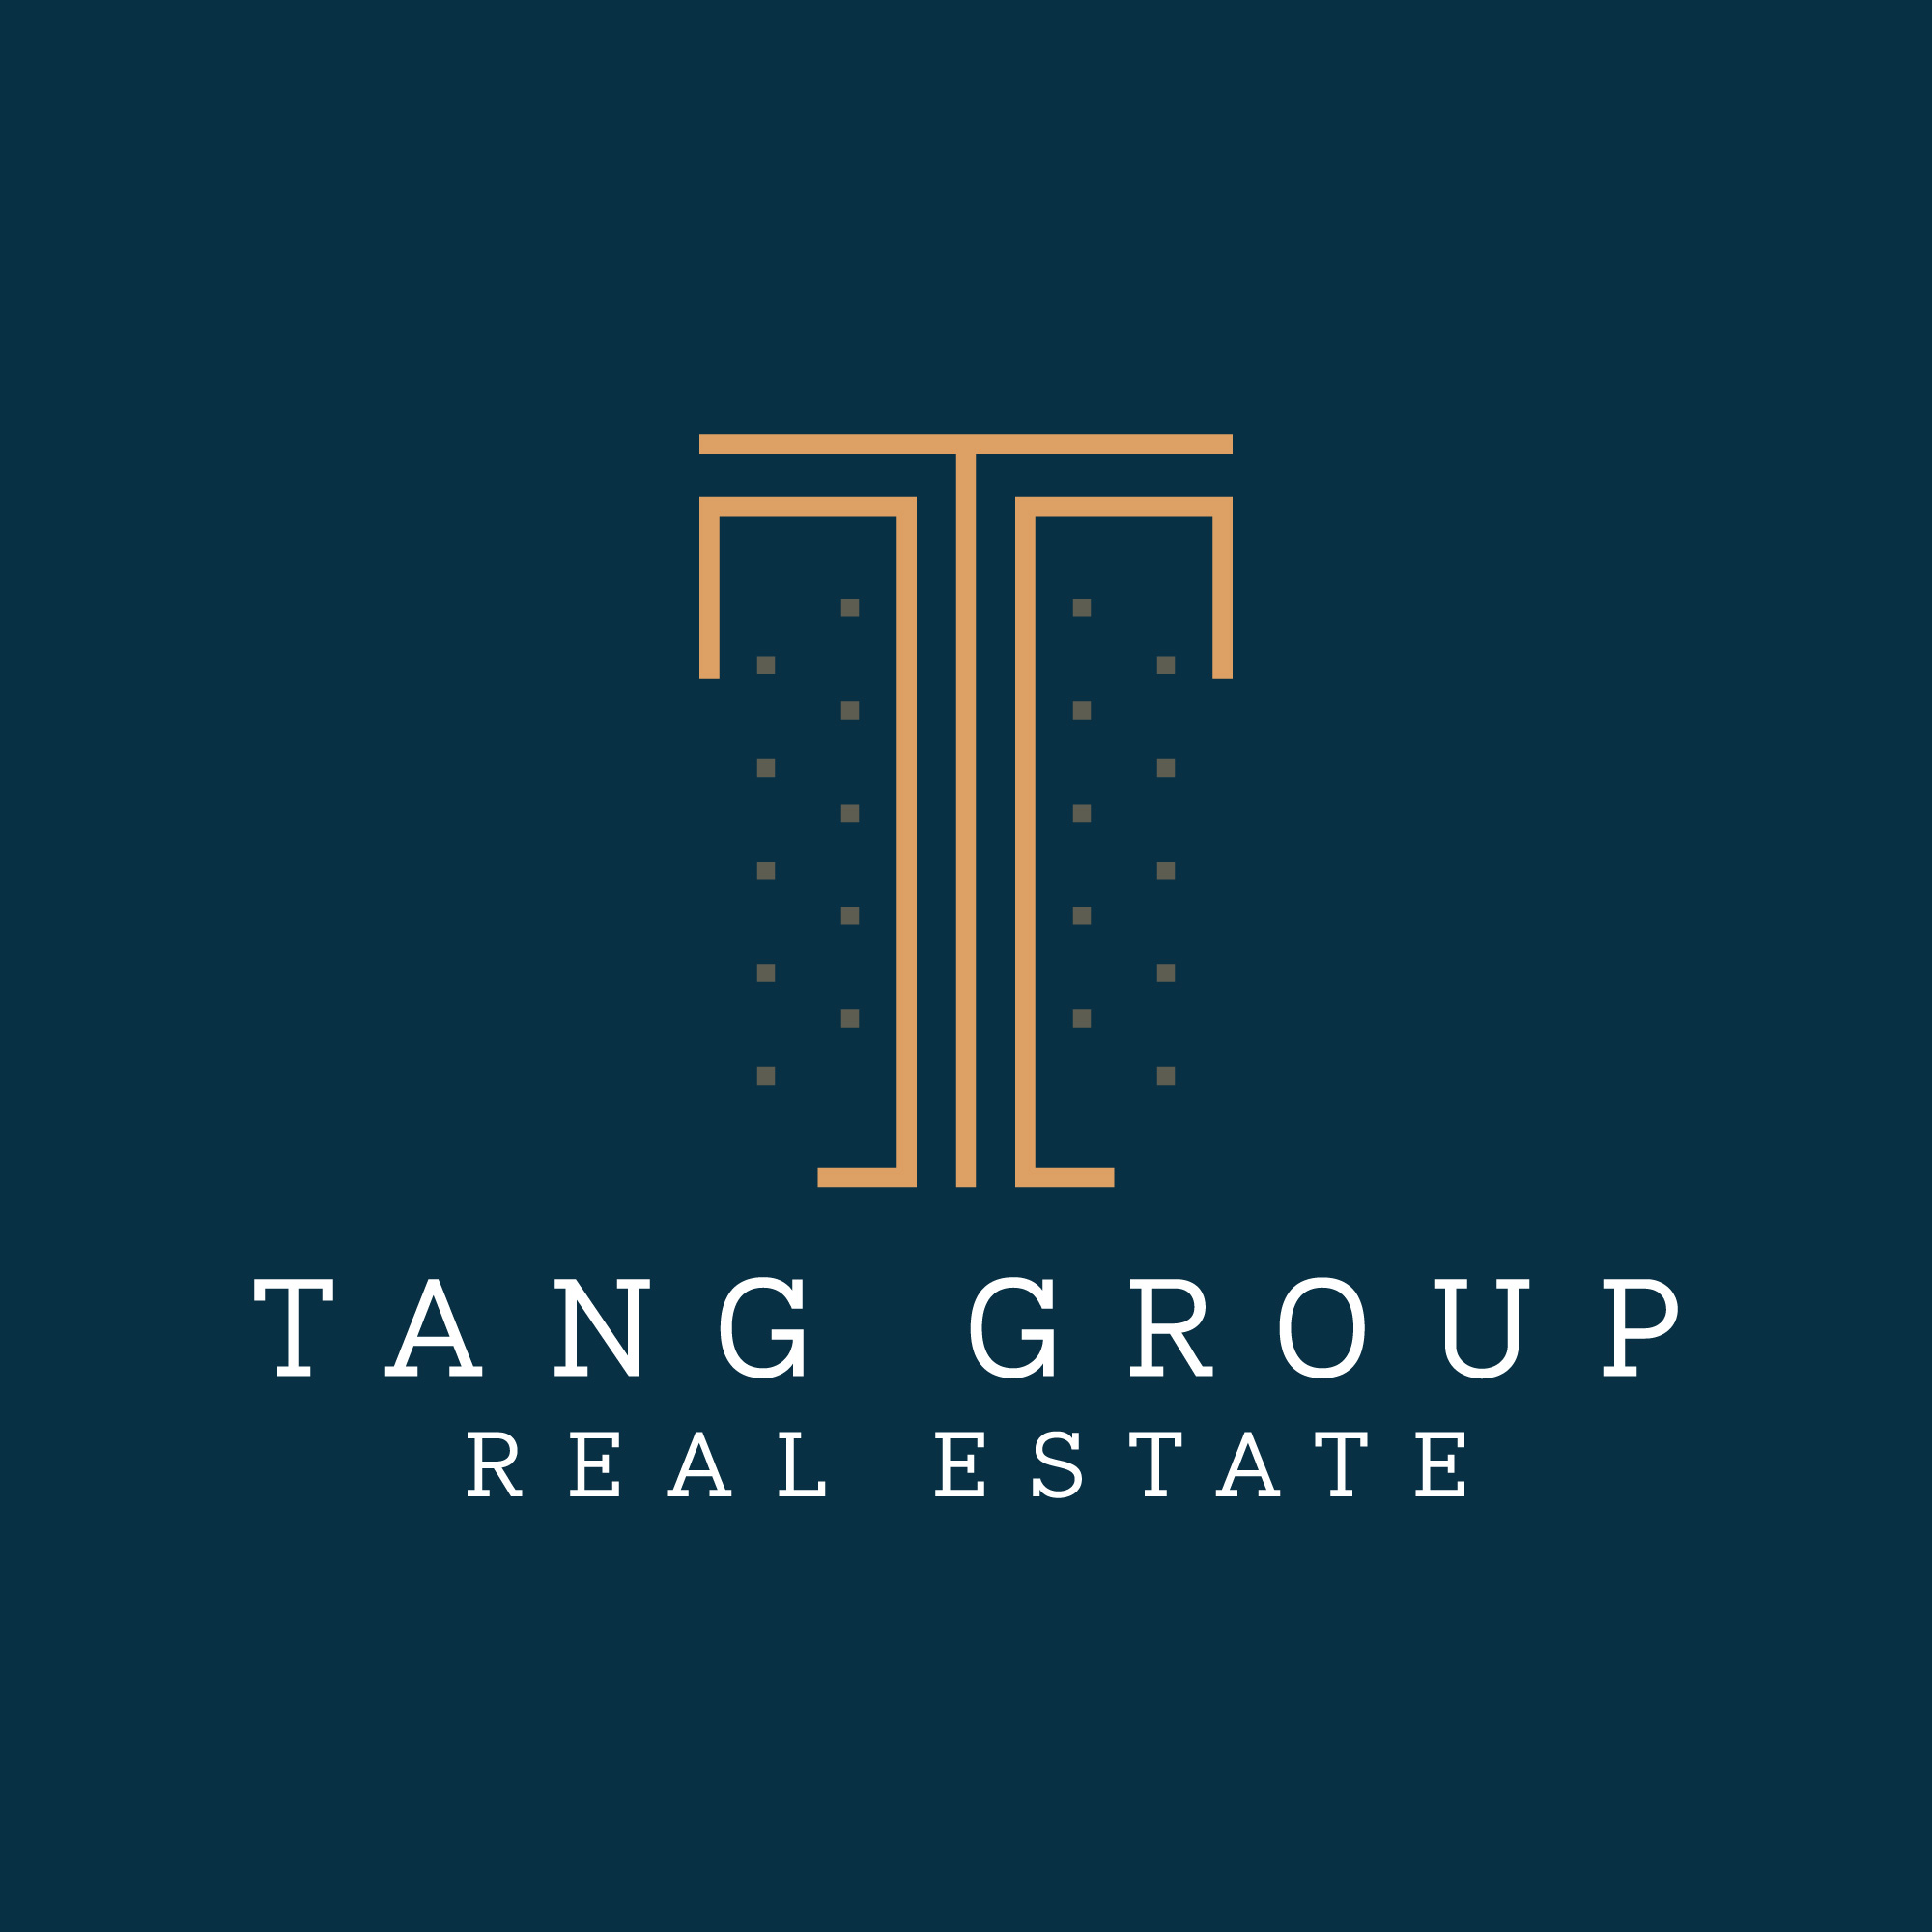 Tang Group Real Estate